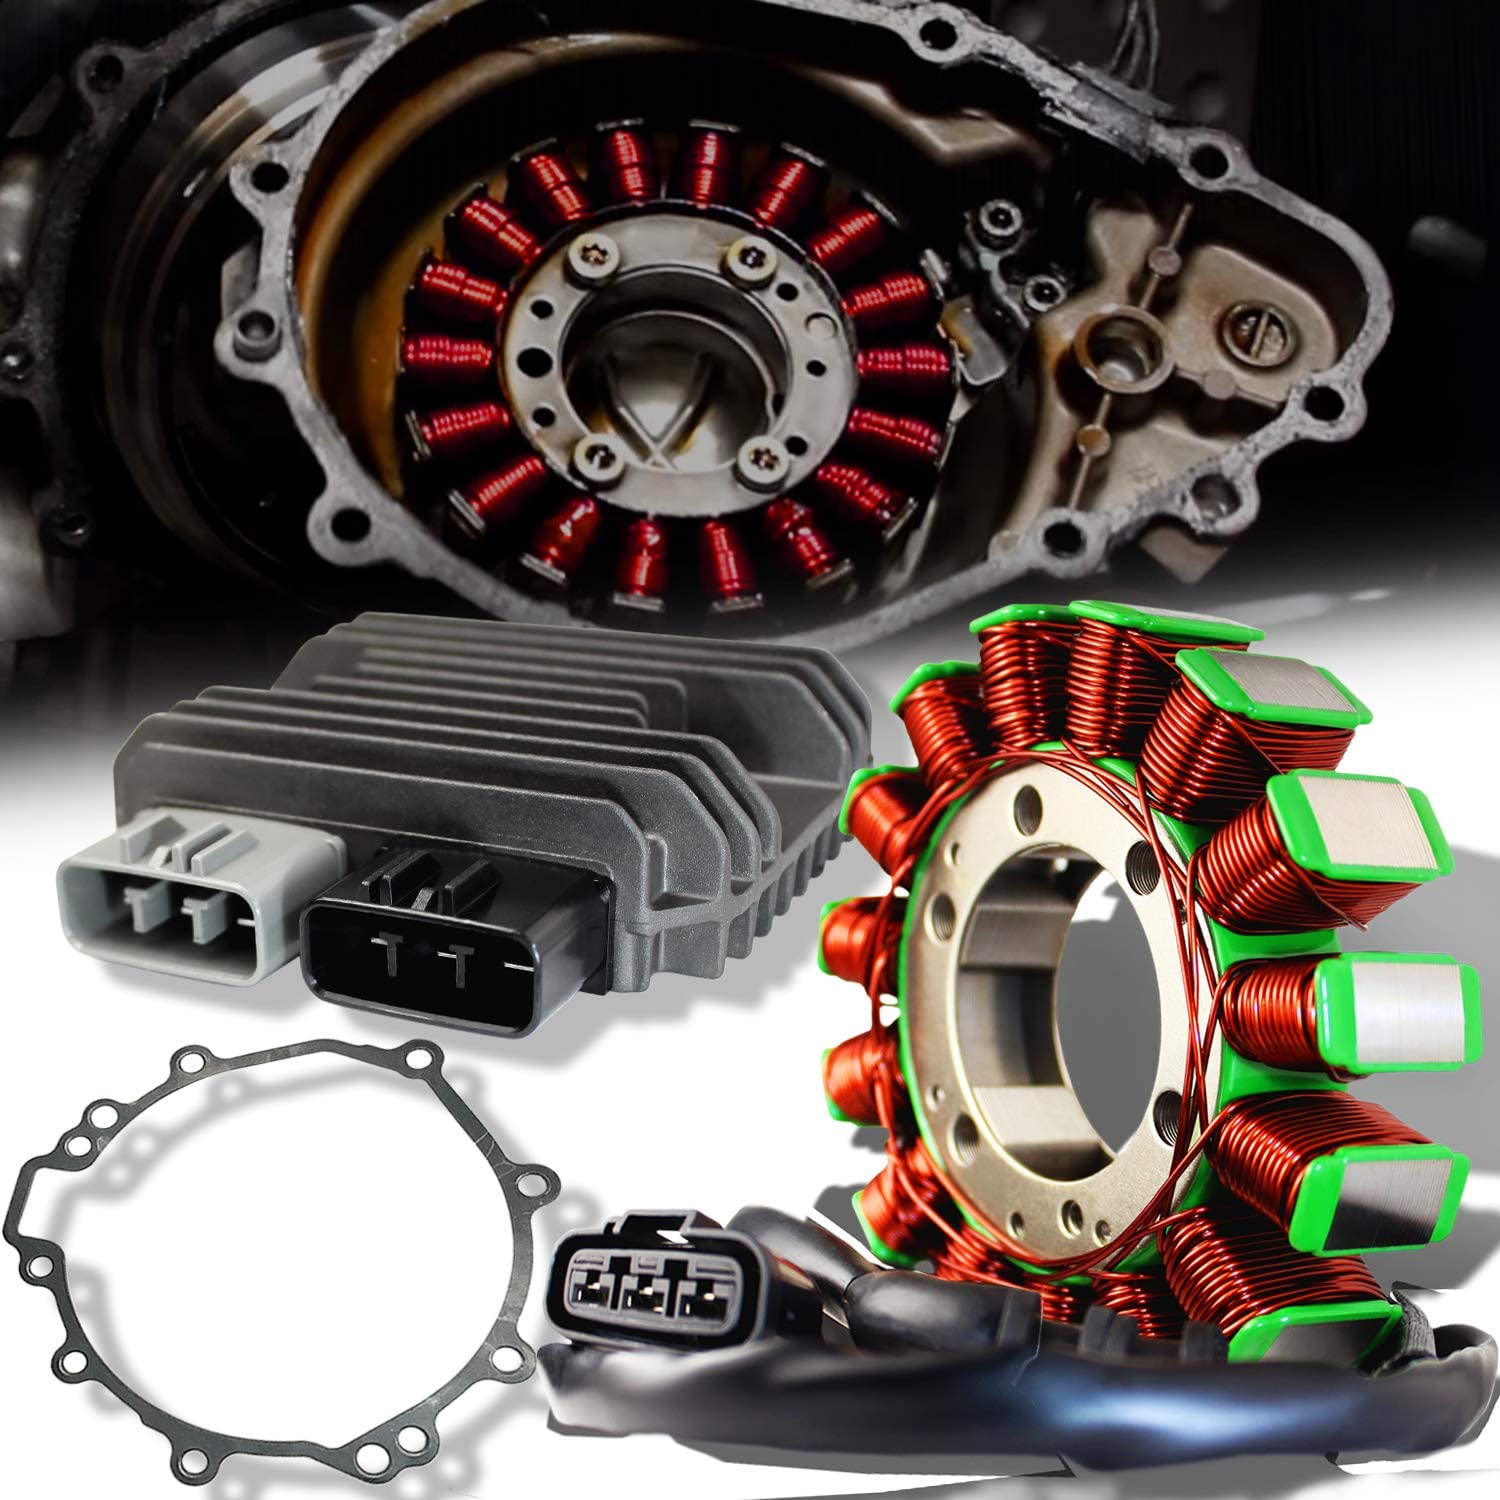 ExtremePowersports OE Magneto Coil Stator+Voltage Rectifier+Gasket 09-12 ZX-6R 636 21003-0083